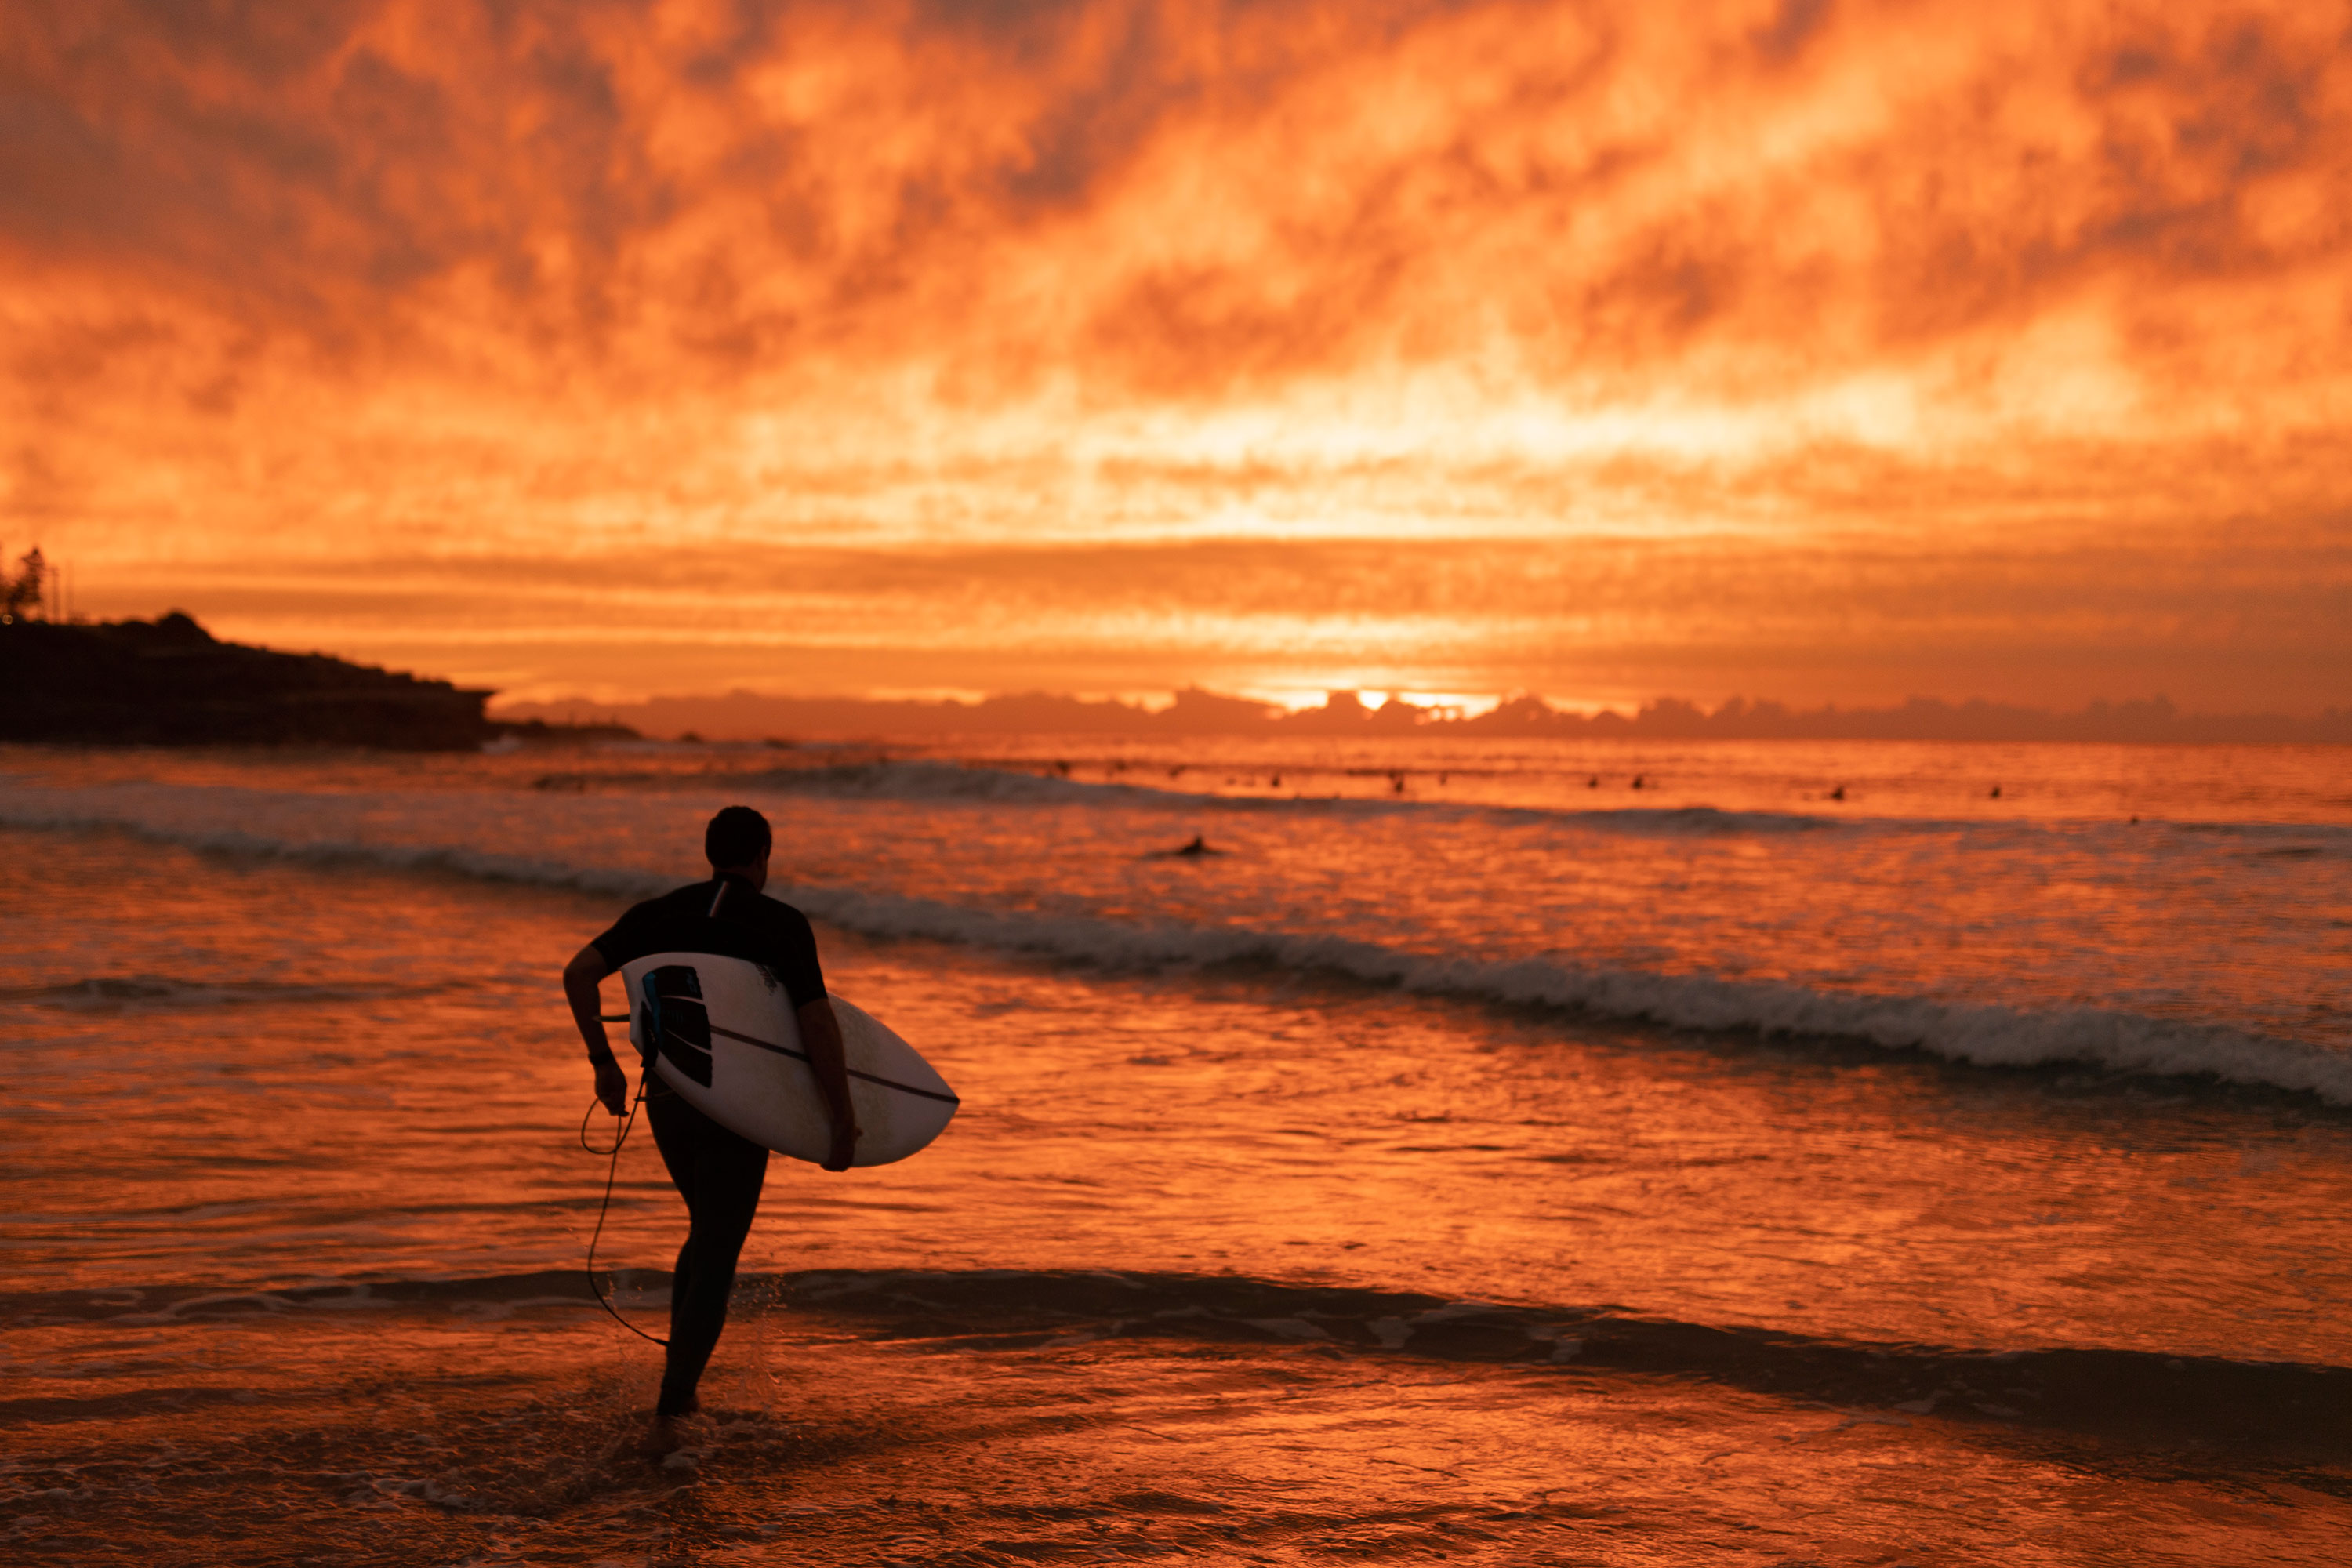 A surfer makes his way out at Maroubra beach on April 20, 2020 in Sydney, Australia. Coogee, Maroubra and Clovelly beaches in Randwick City reopened today for exercise only.